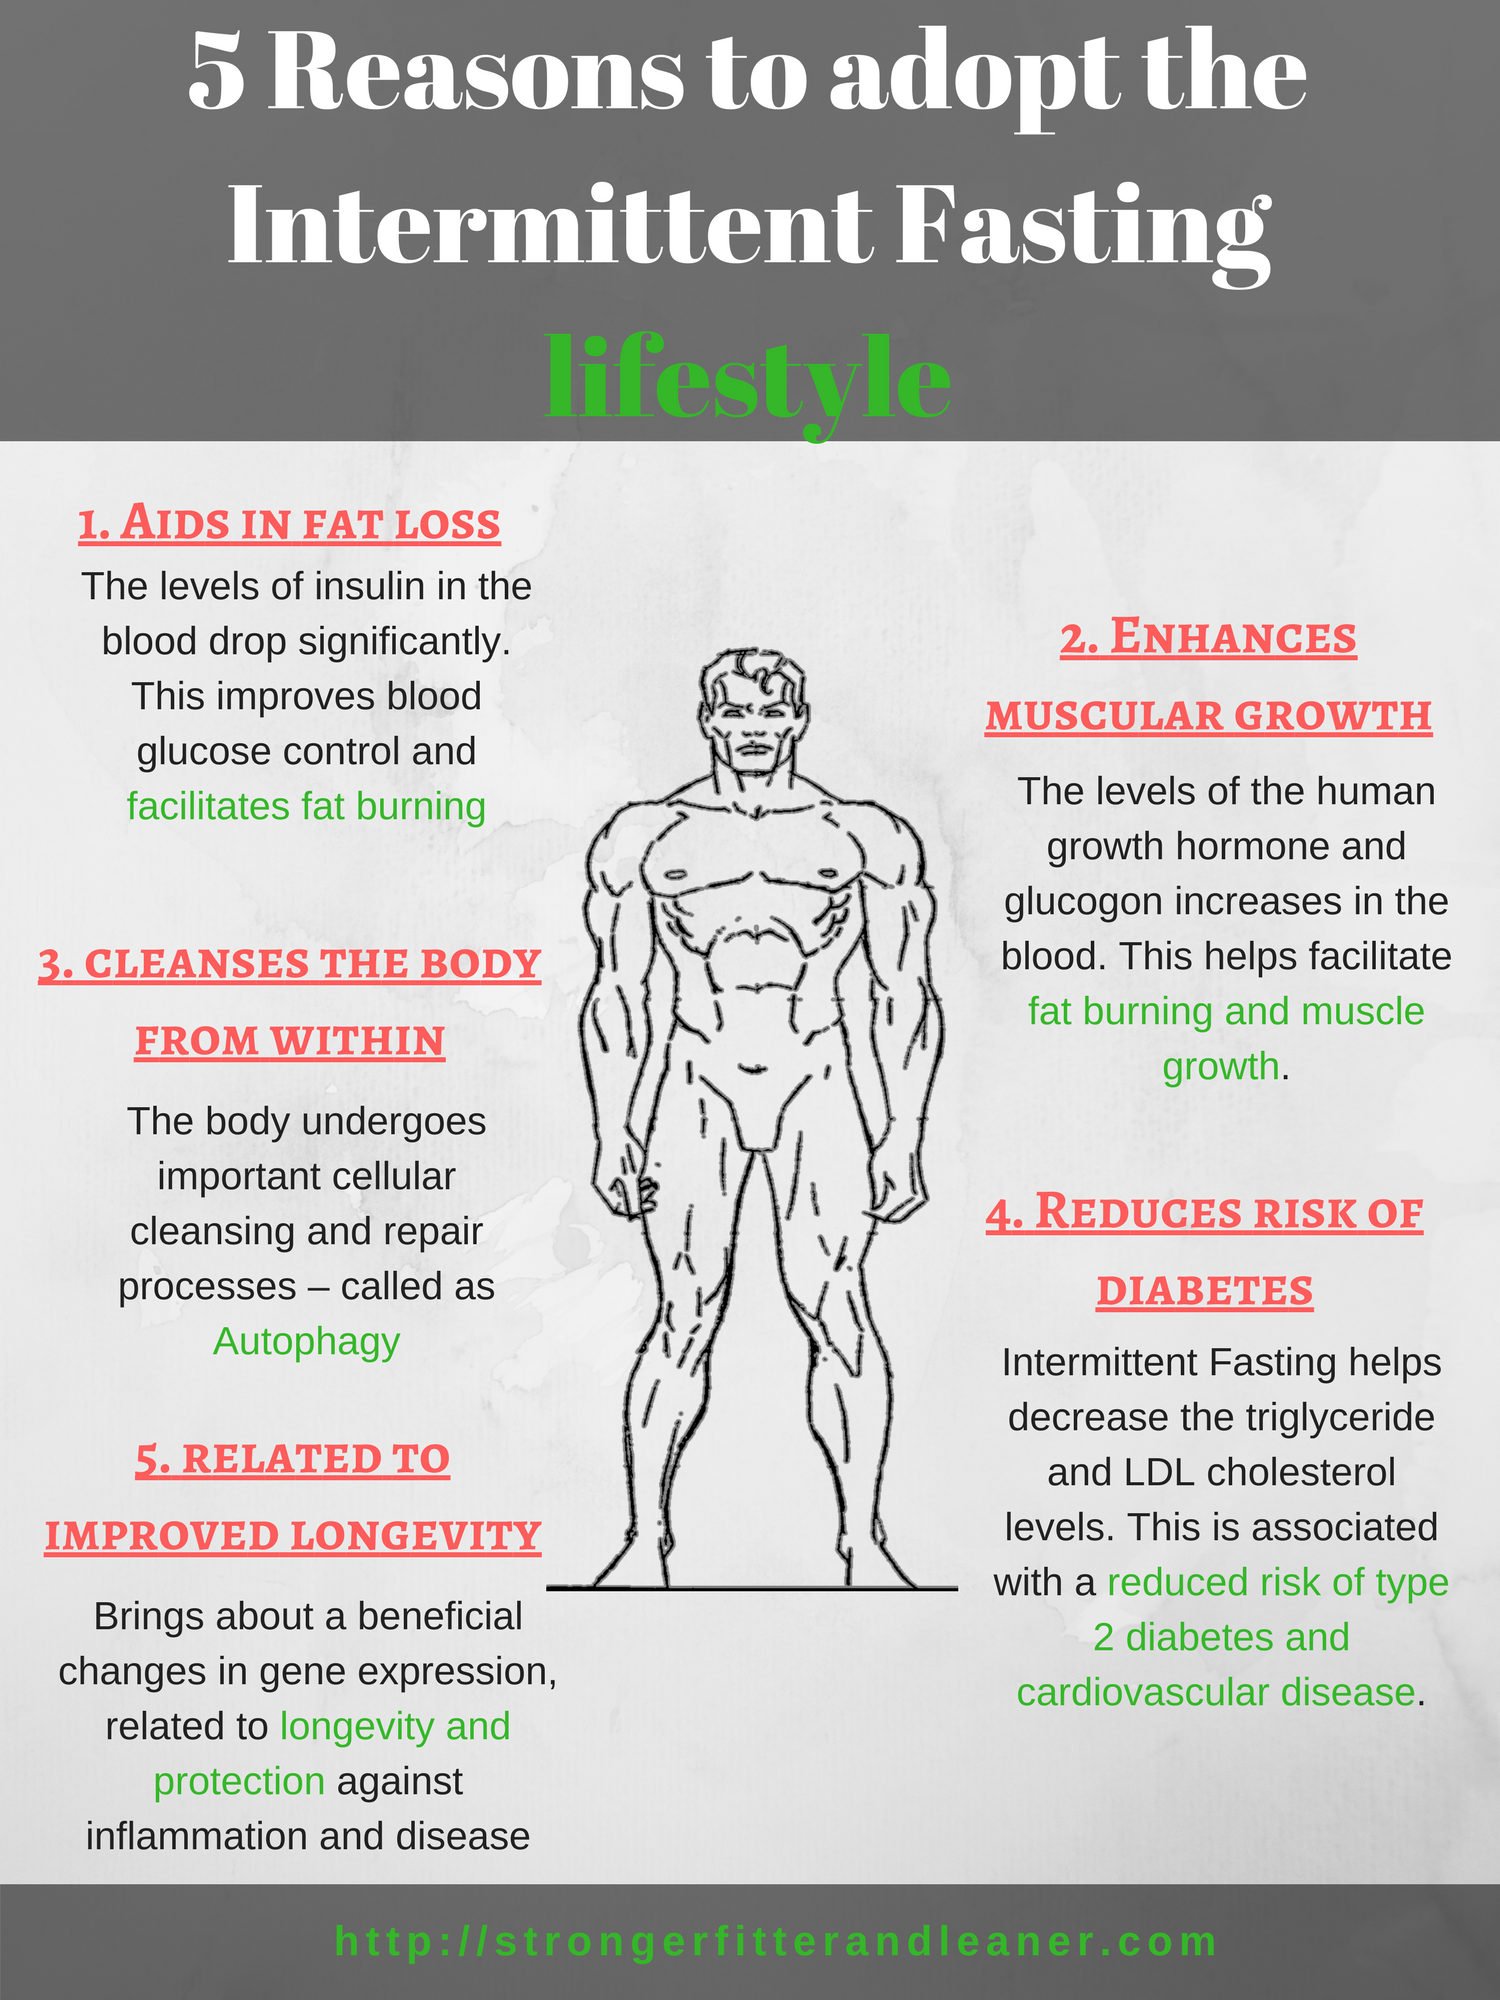 Reasons to adopt Intermittent Fasting